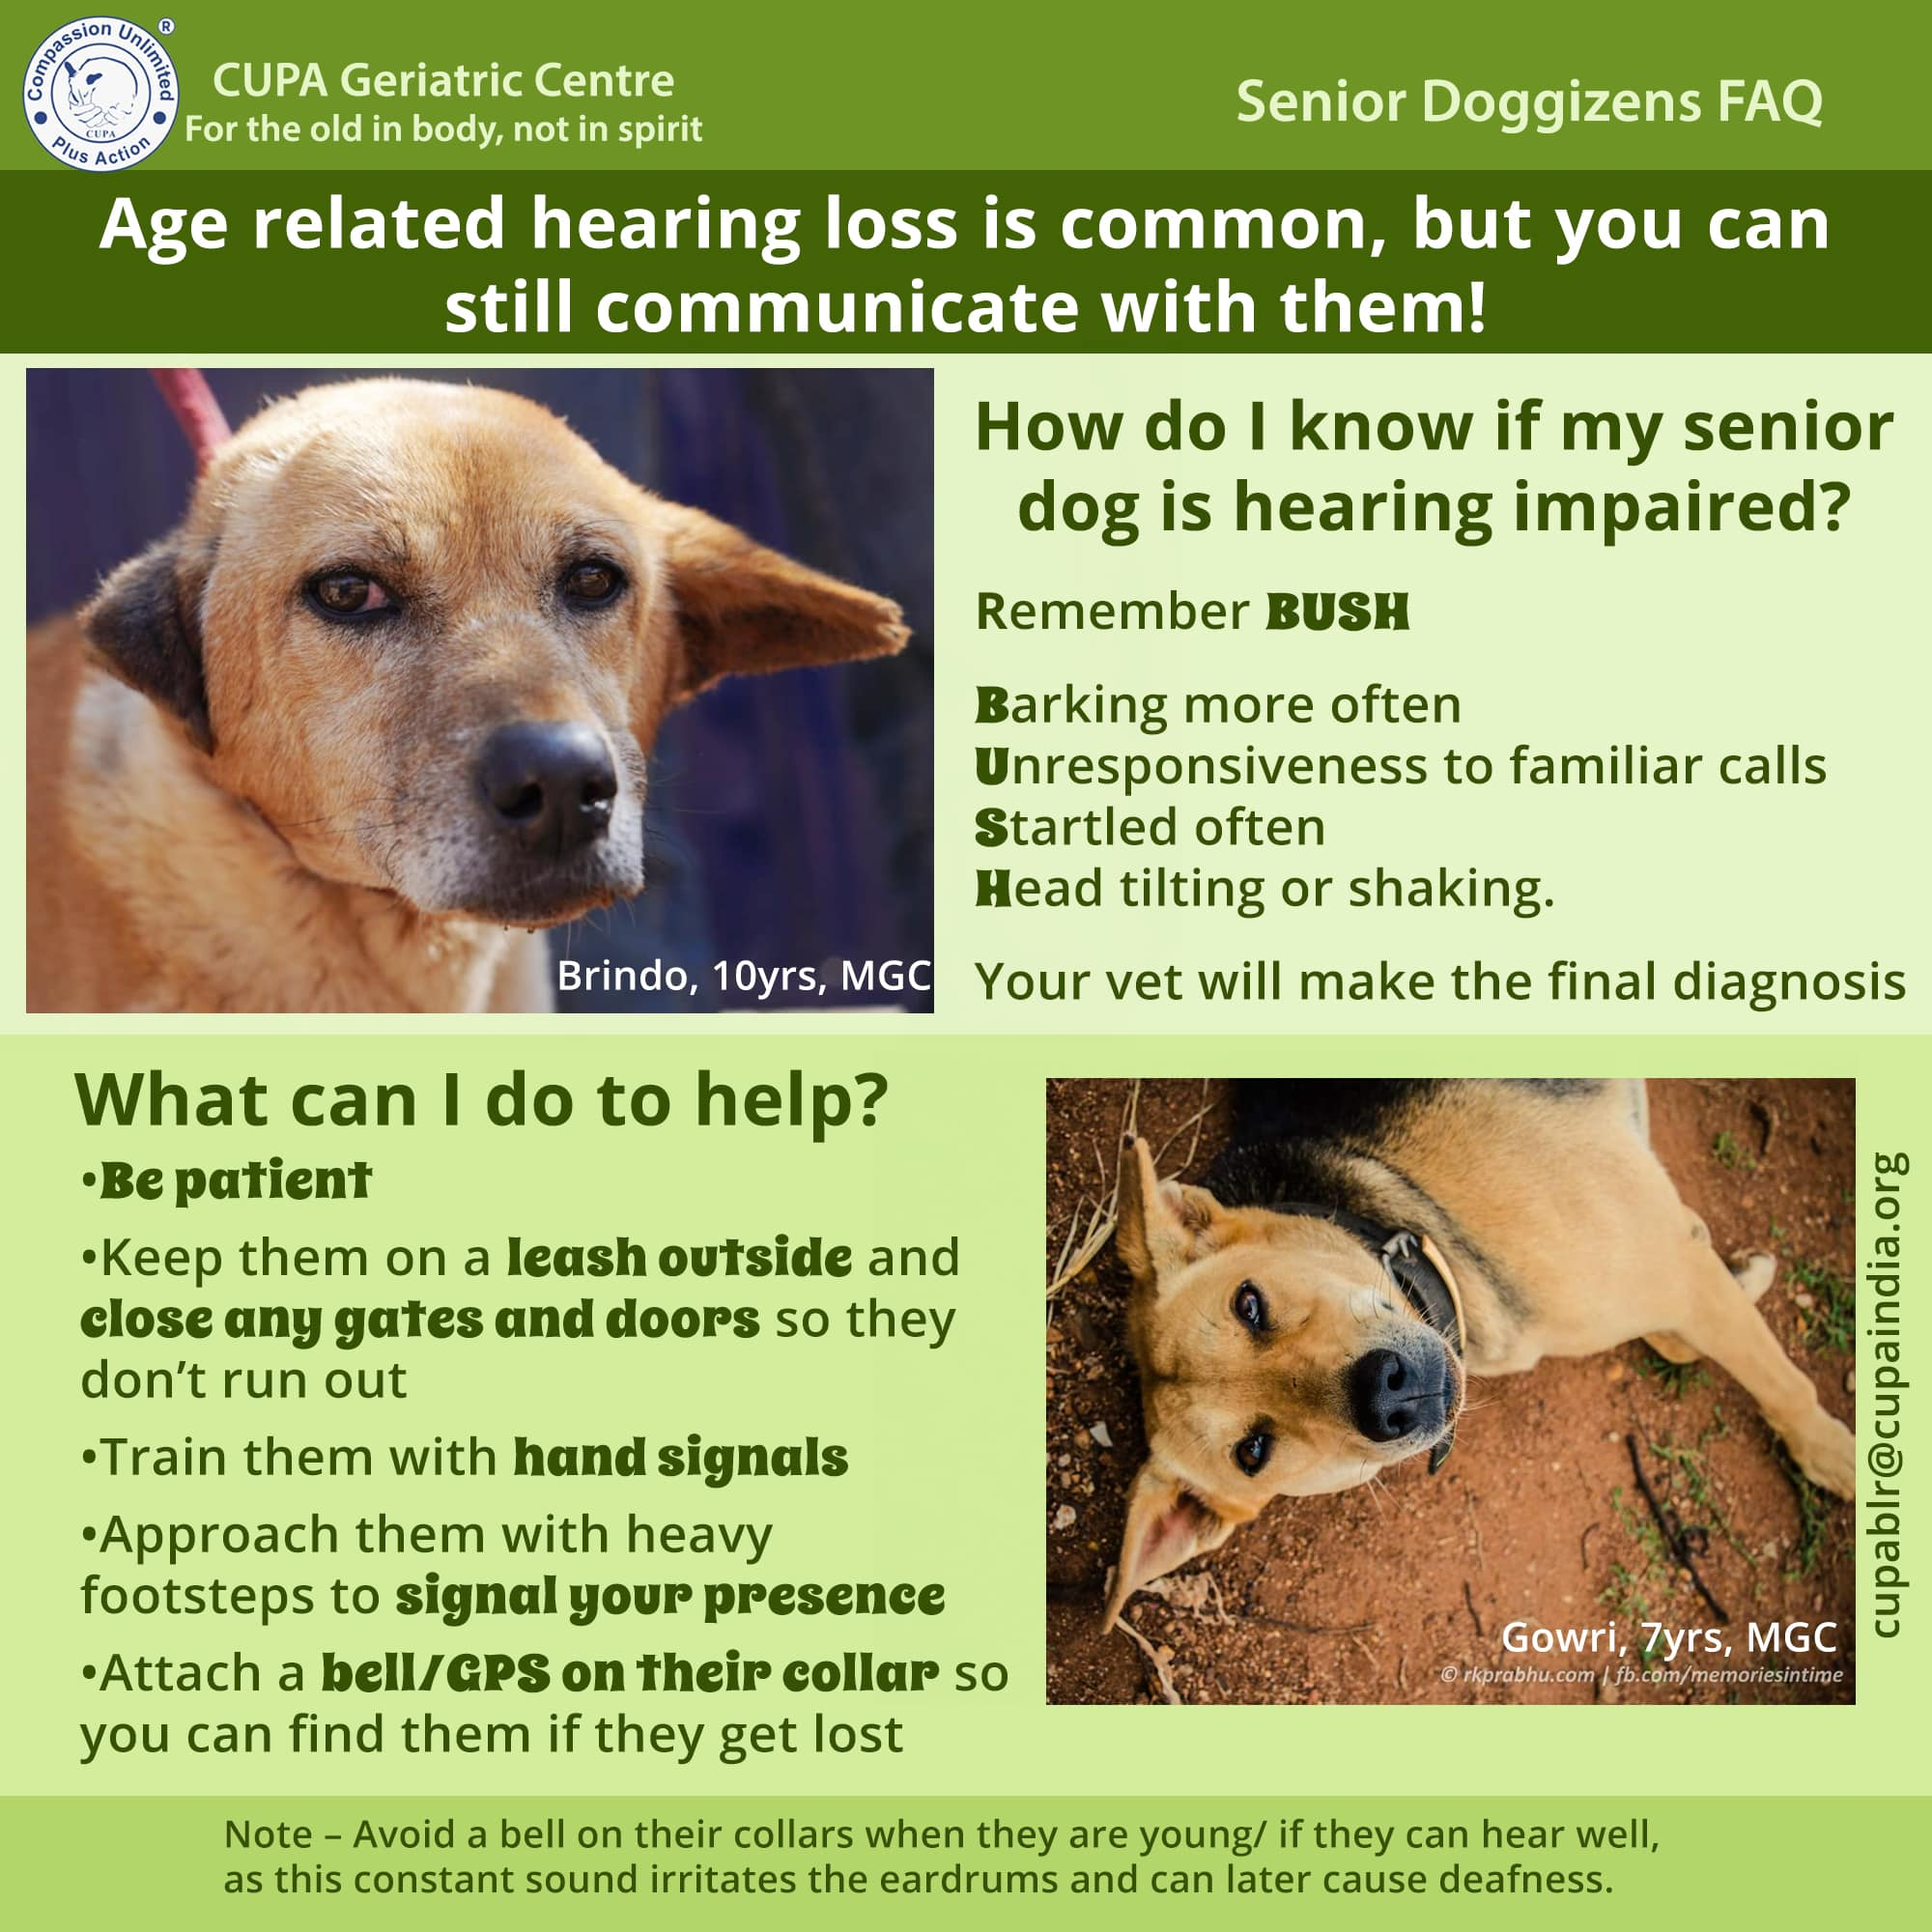 AGE RELATED HEARING LOSS IS COMMON, BUT YOU CAN STILL COMMUNICATE WITH THEM!